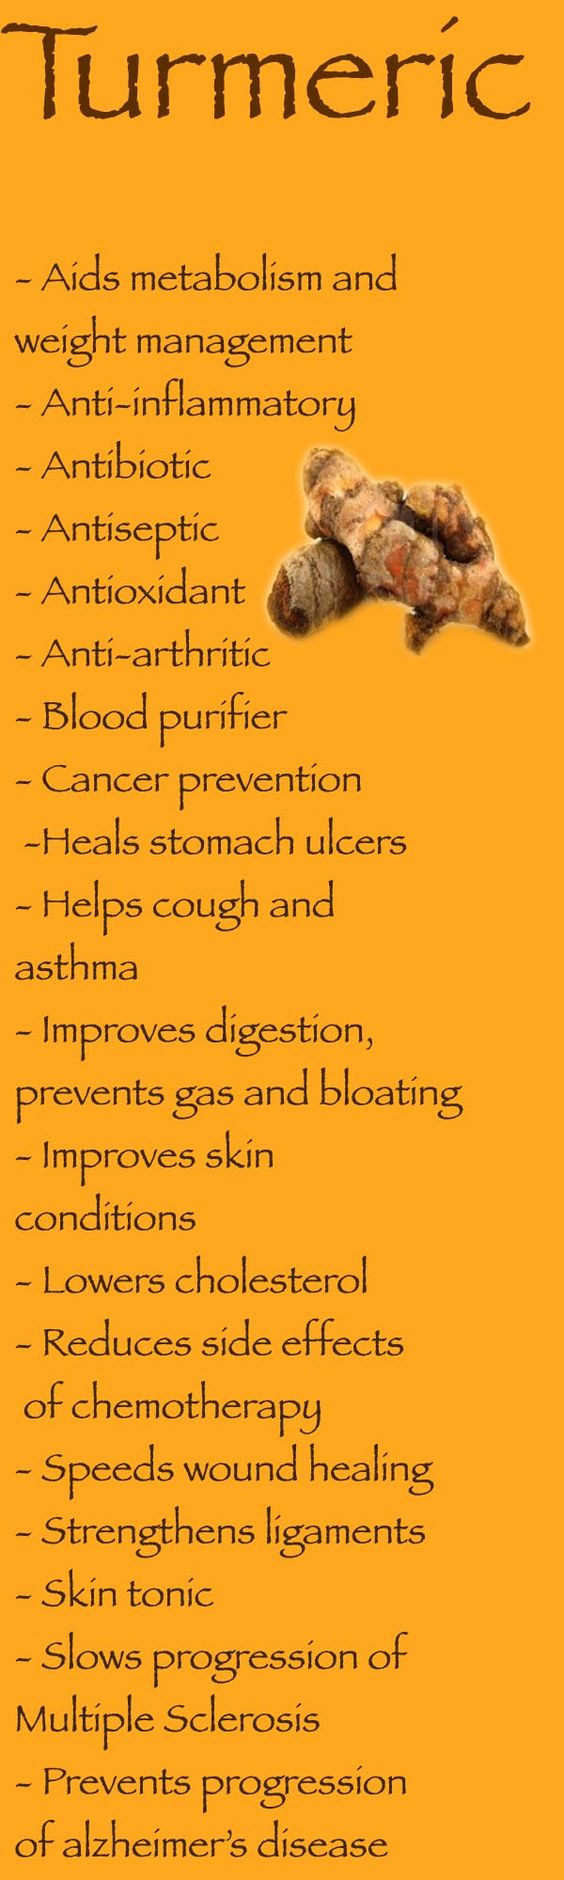 Health Benefits of Turmeric: